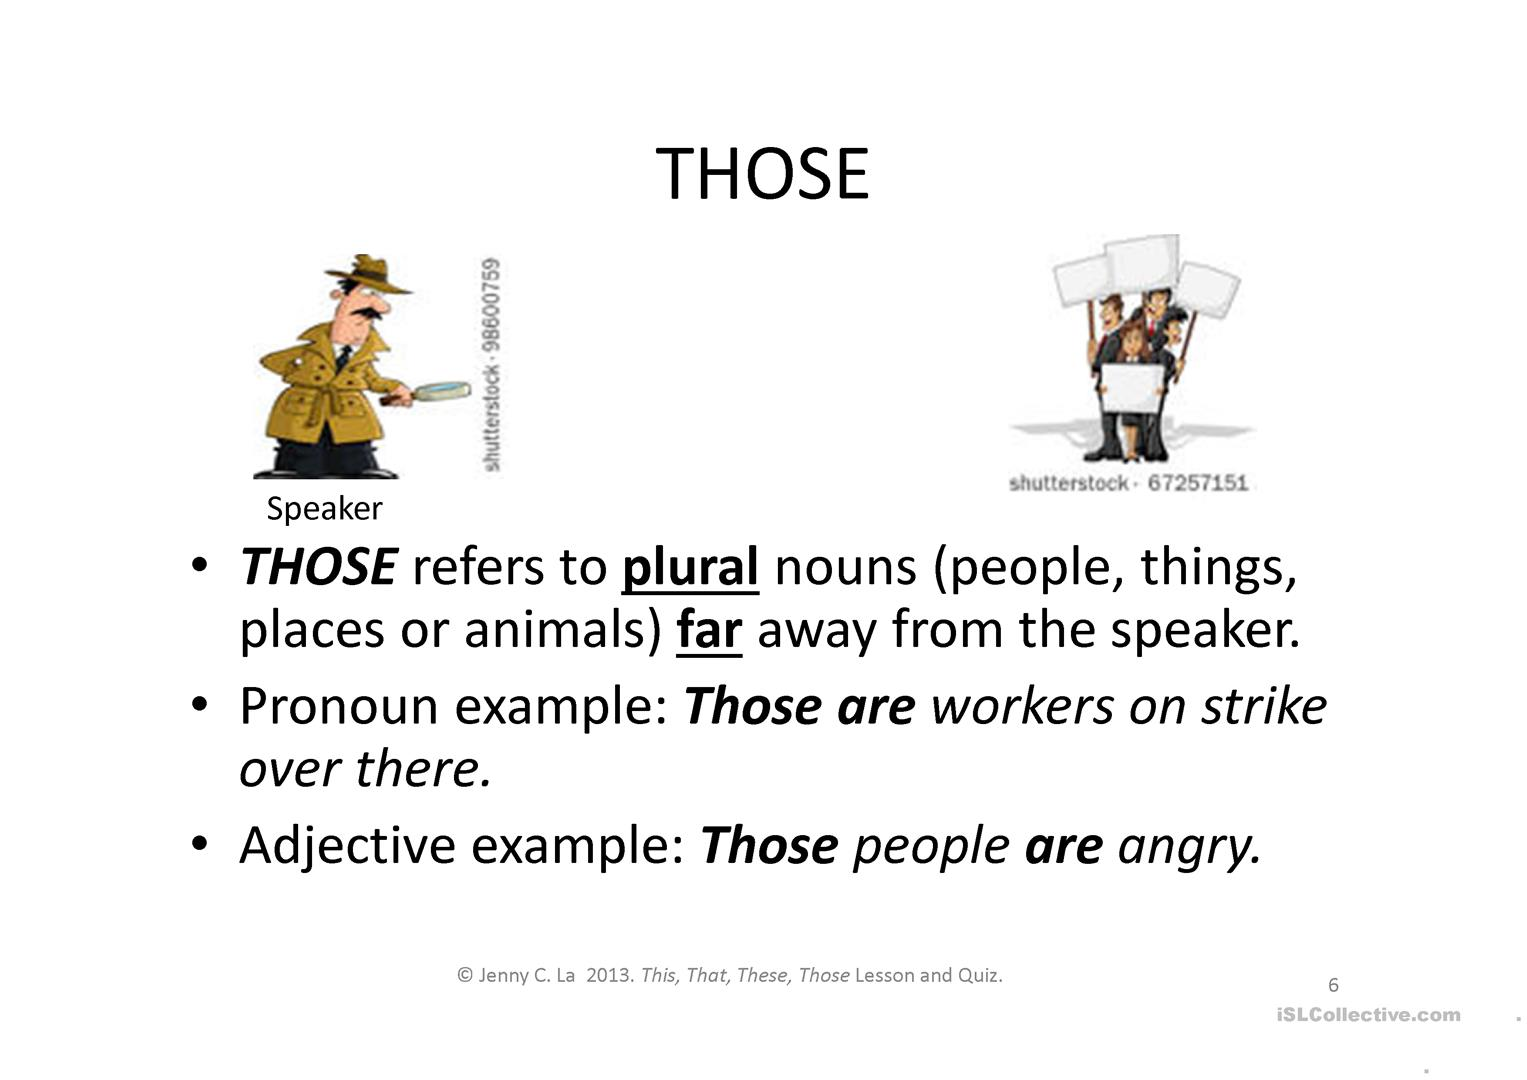 Worksheet This That These Those